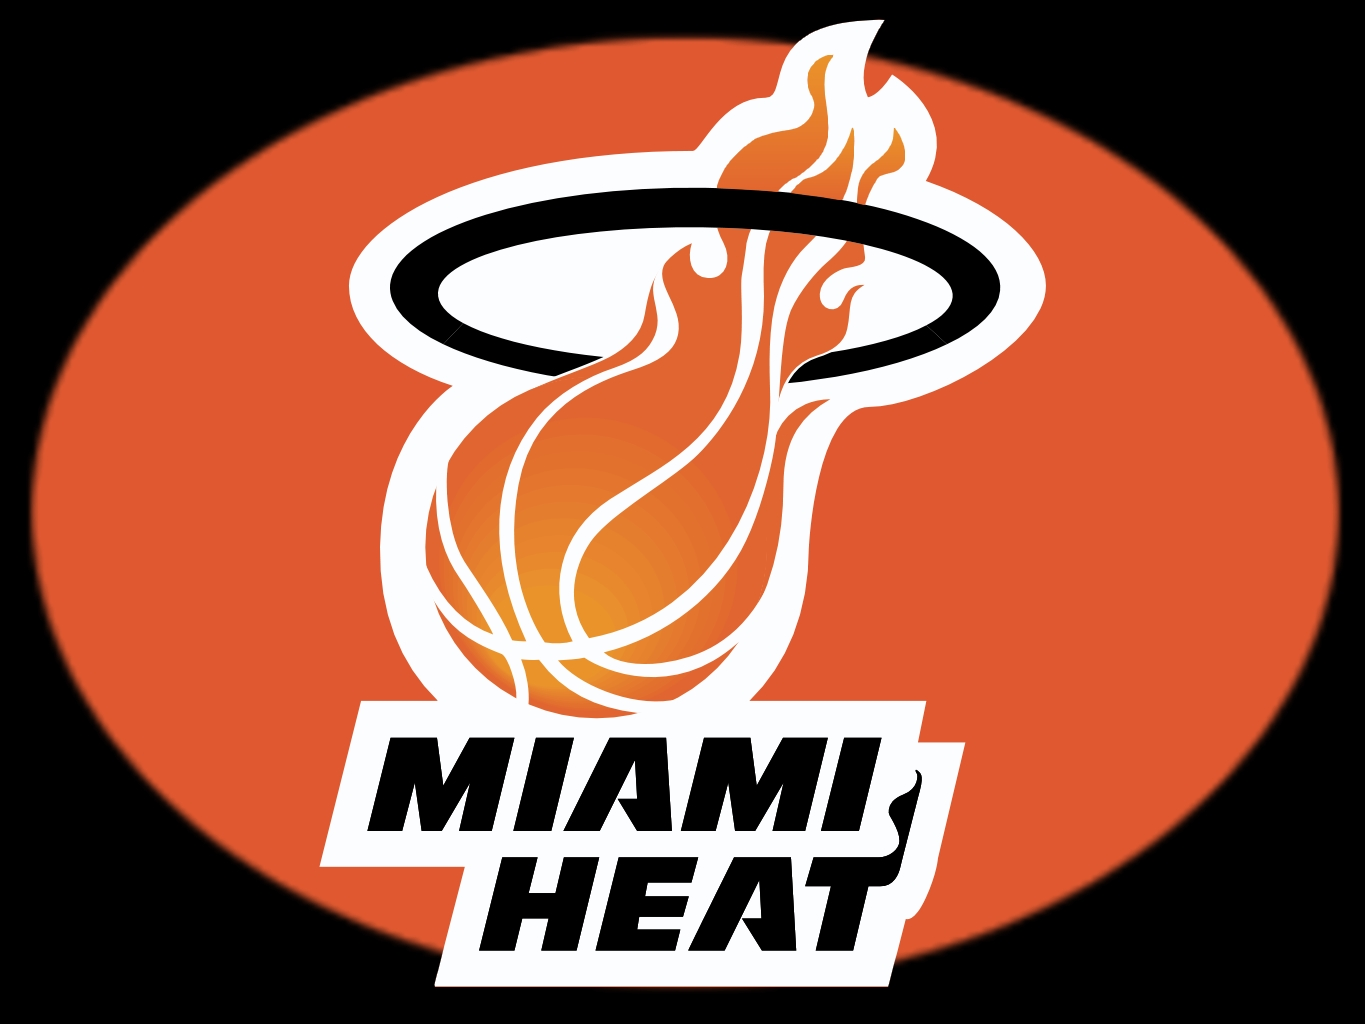 All Miami Heat Logos